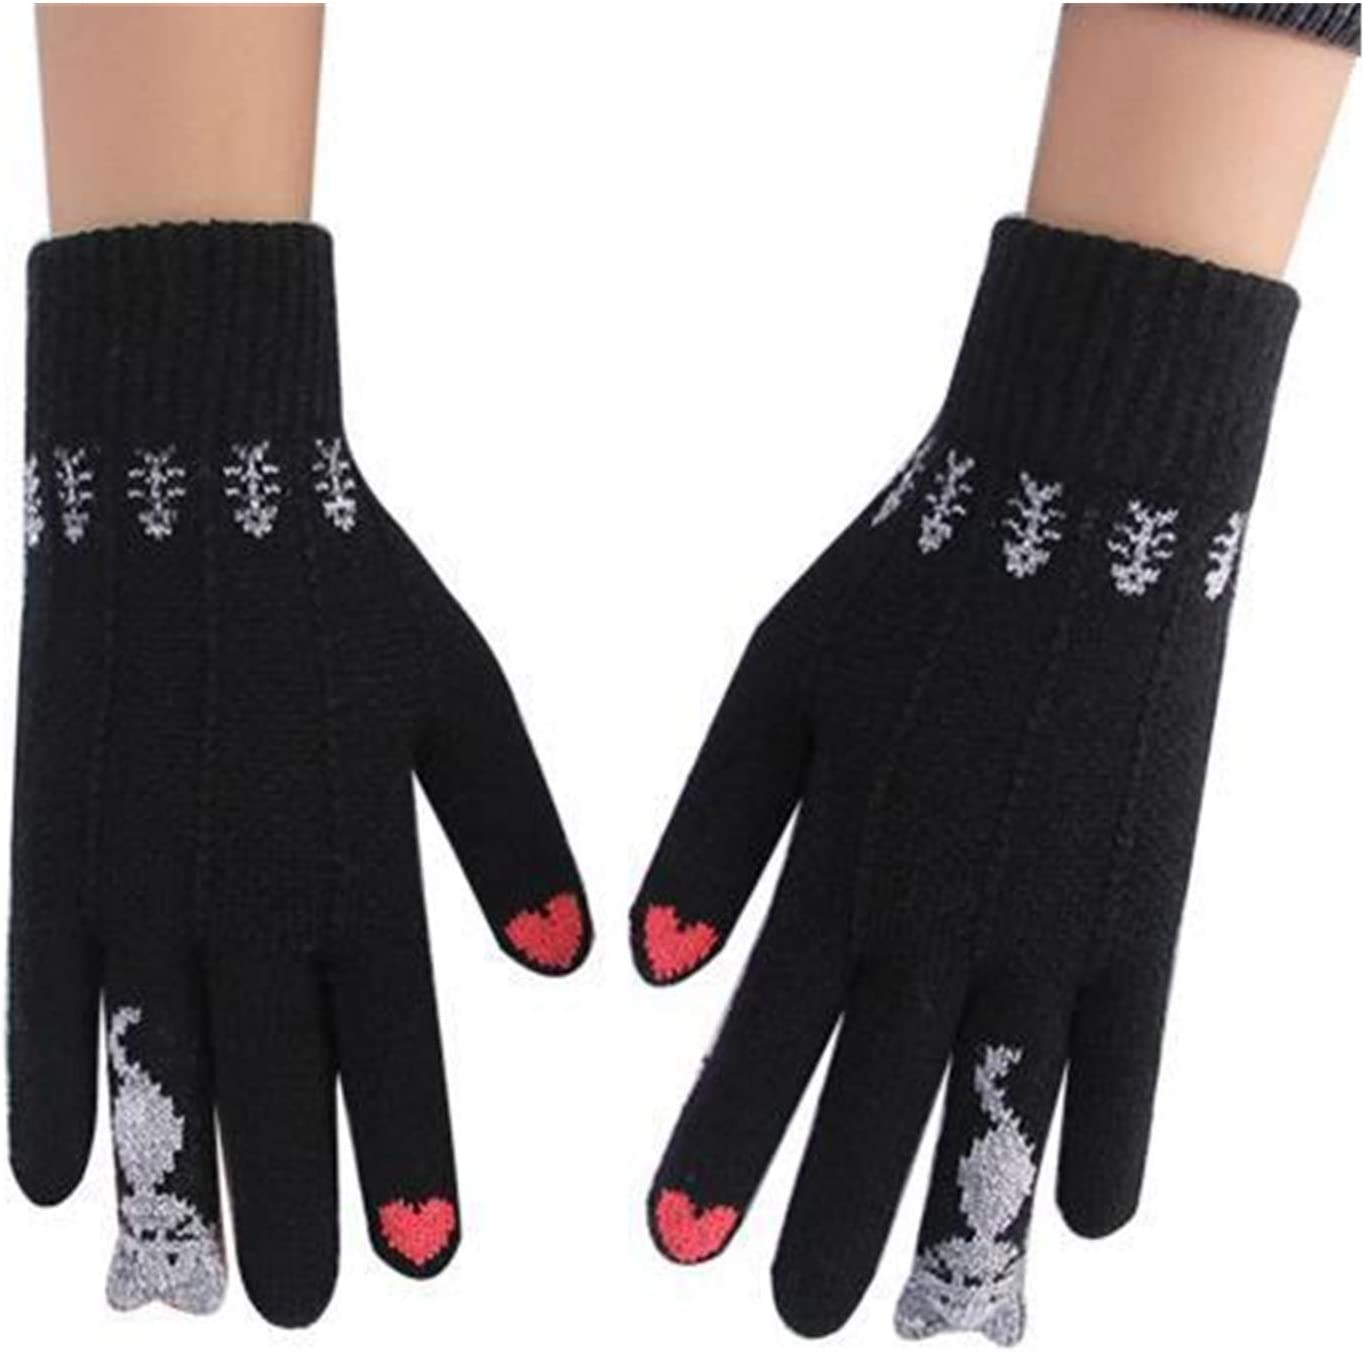 GUYANMAY Lace Gloves Female Male Warm Winter Knitted Gloves Full Finger Mittens Cute Cartoon Cats Touched Screen Unisex Gloves (Color : Black)